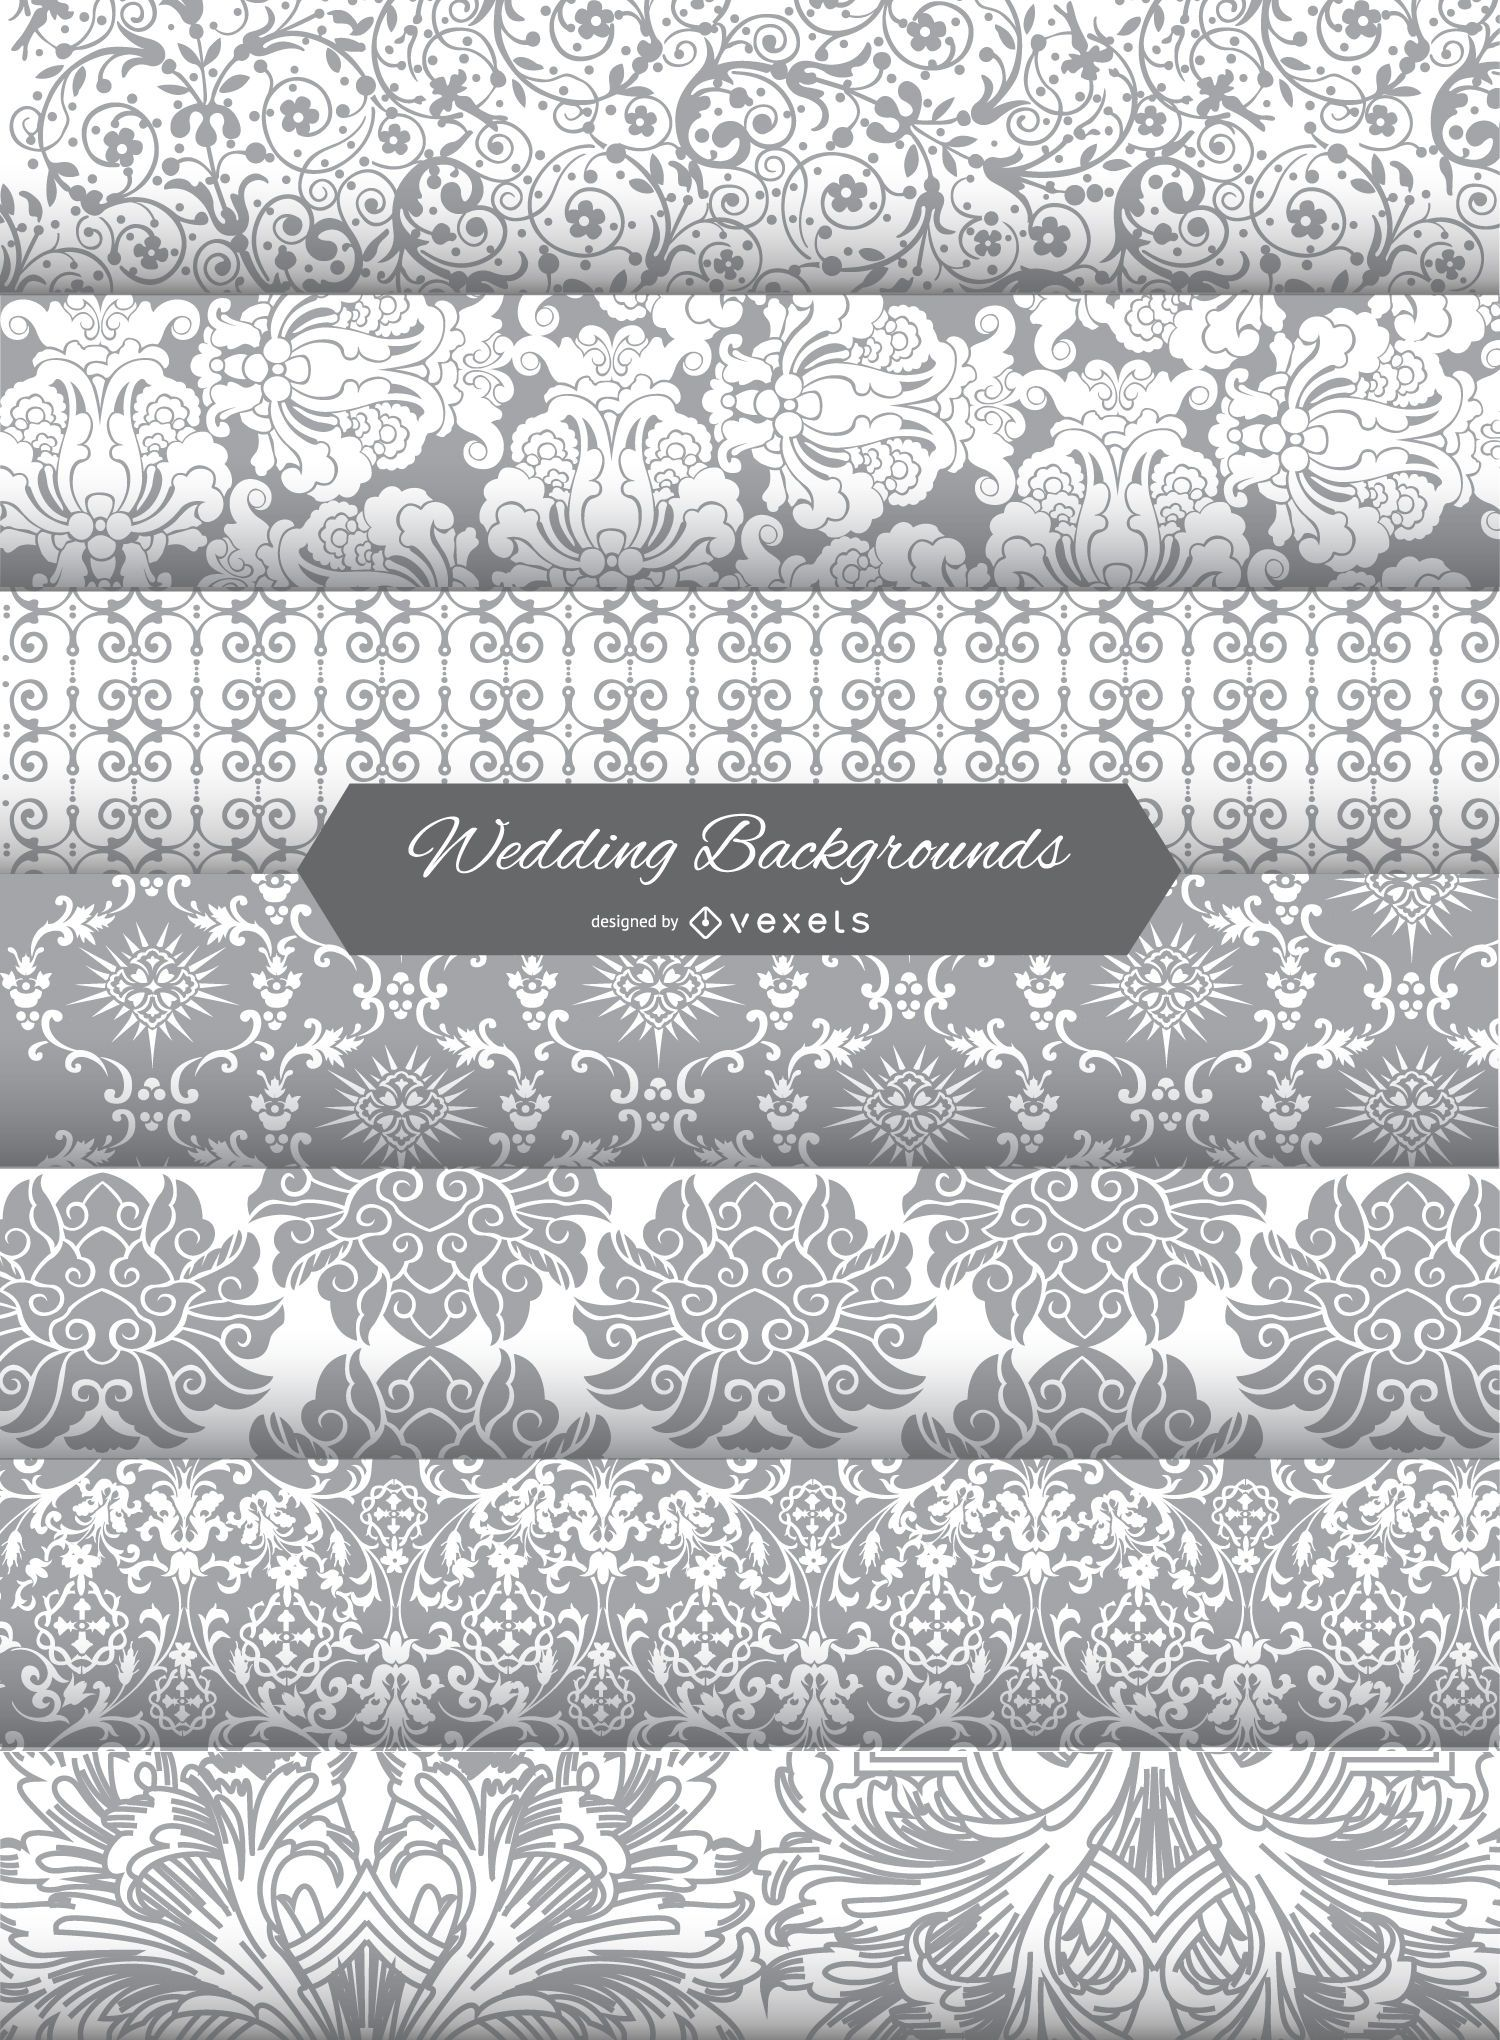 Wedding Invitation Background patterns - Vector download